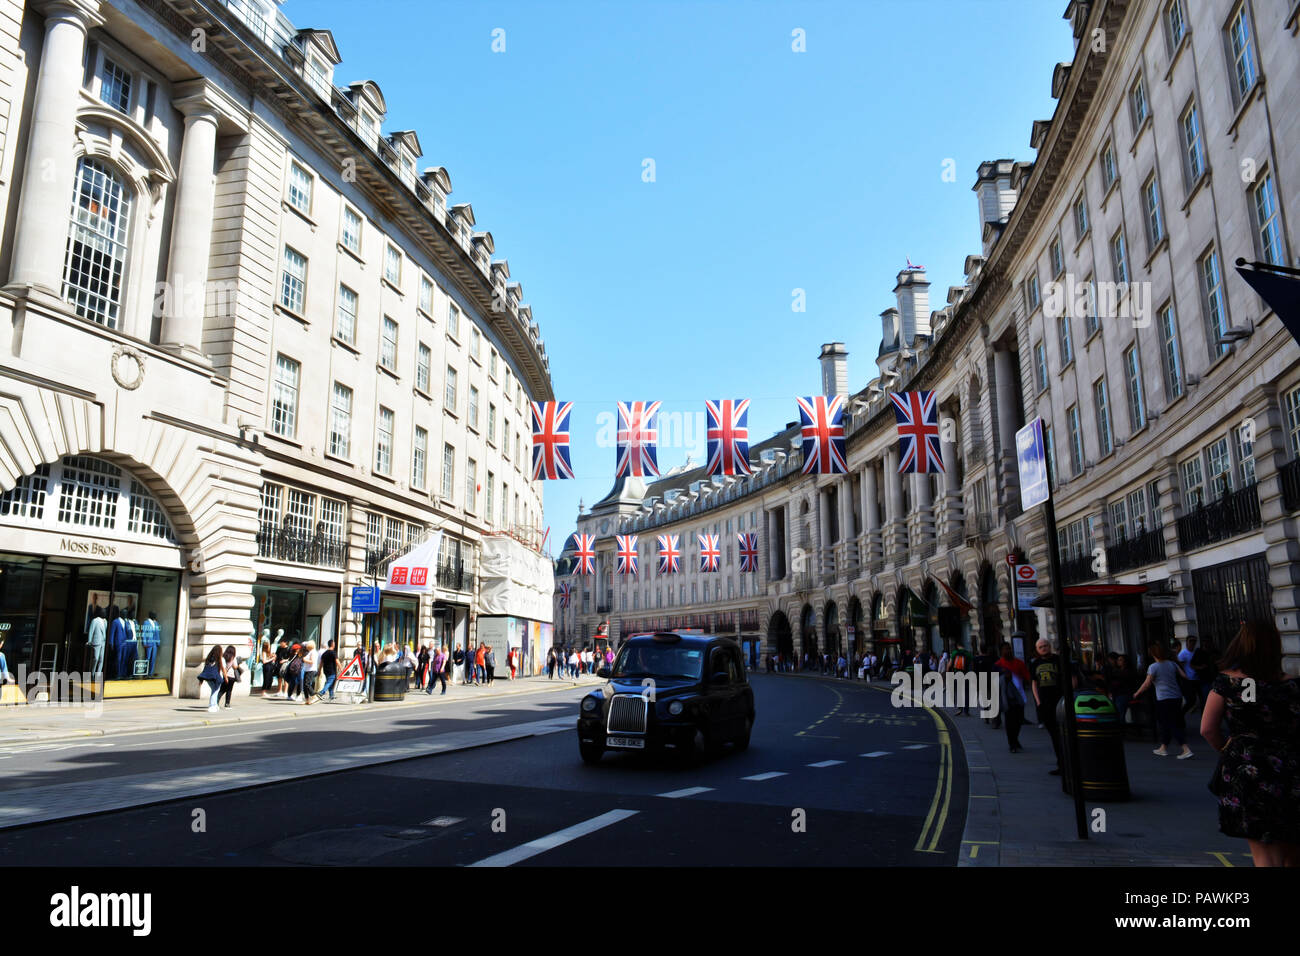 Nice day in London city. Liberation day. Stock Photo